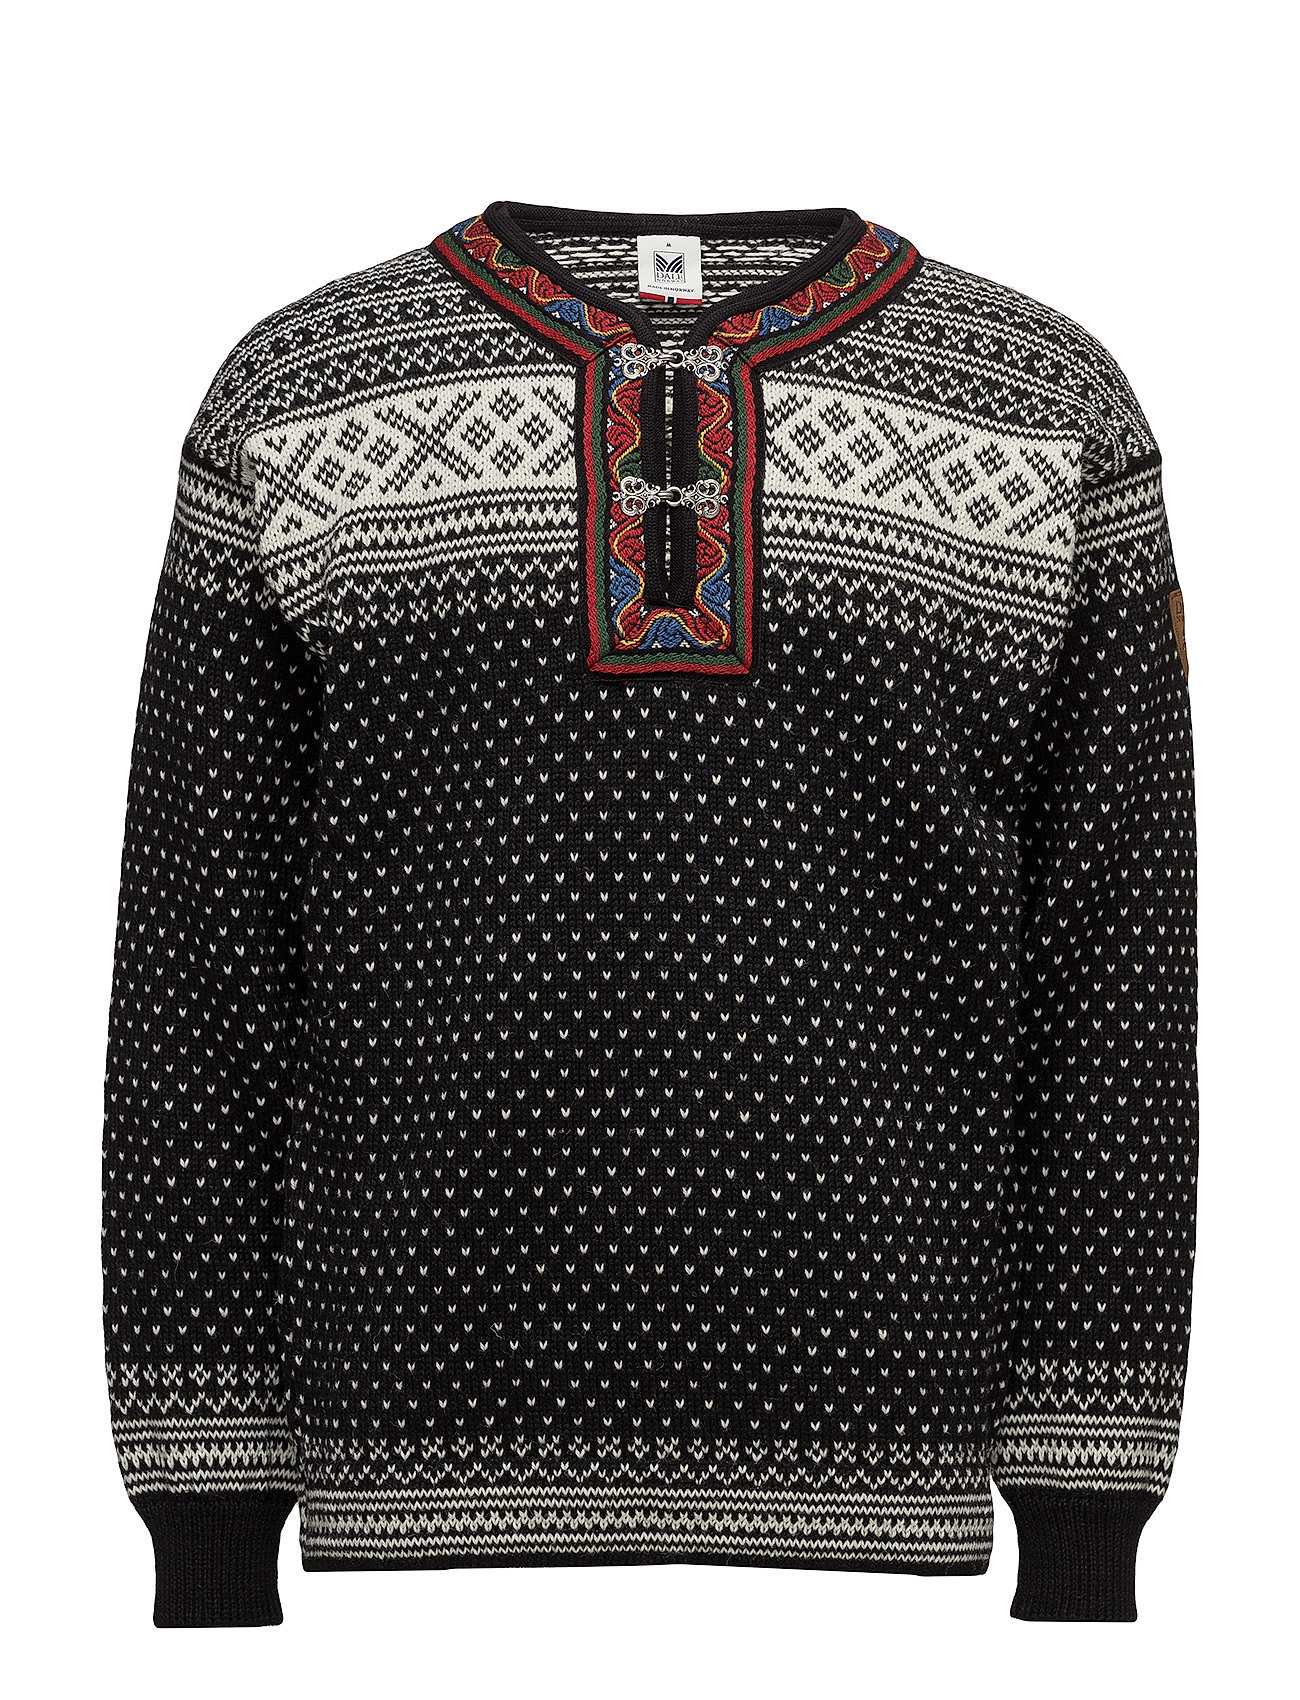 dale of norway – Setesdal sweater på boozt.com dk